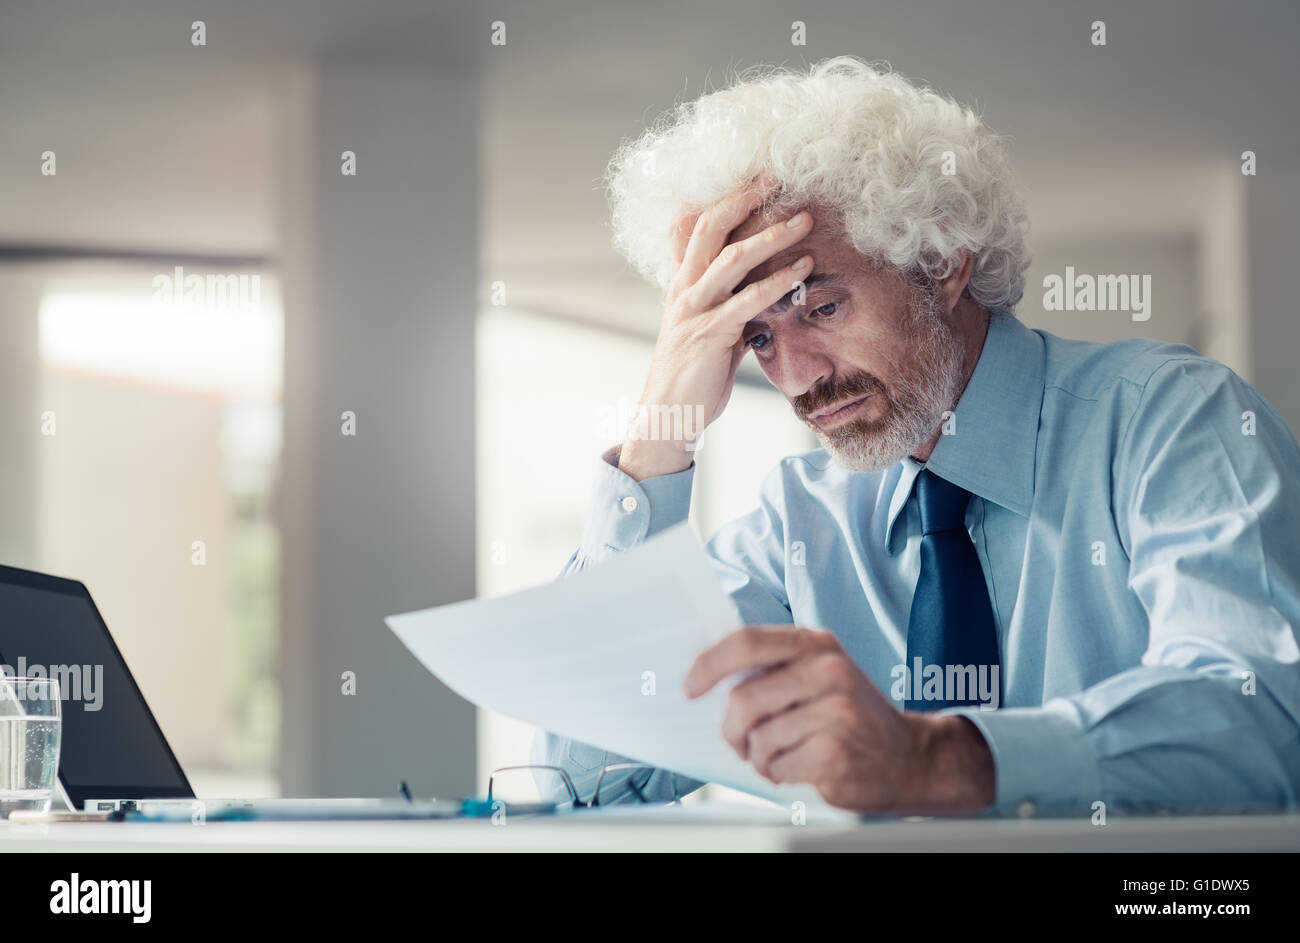 Confused shocked businessman receiving bad news, reading a letter and touching his forehead, failure and loss concept - Stock Image